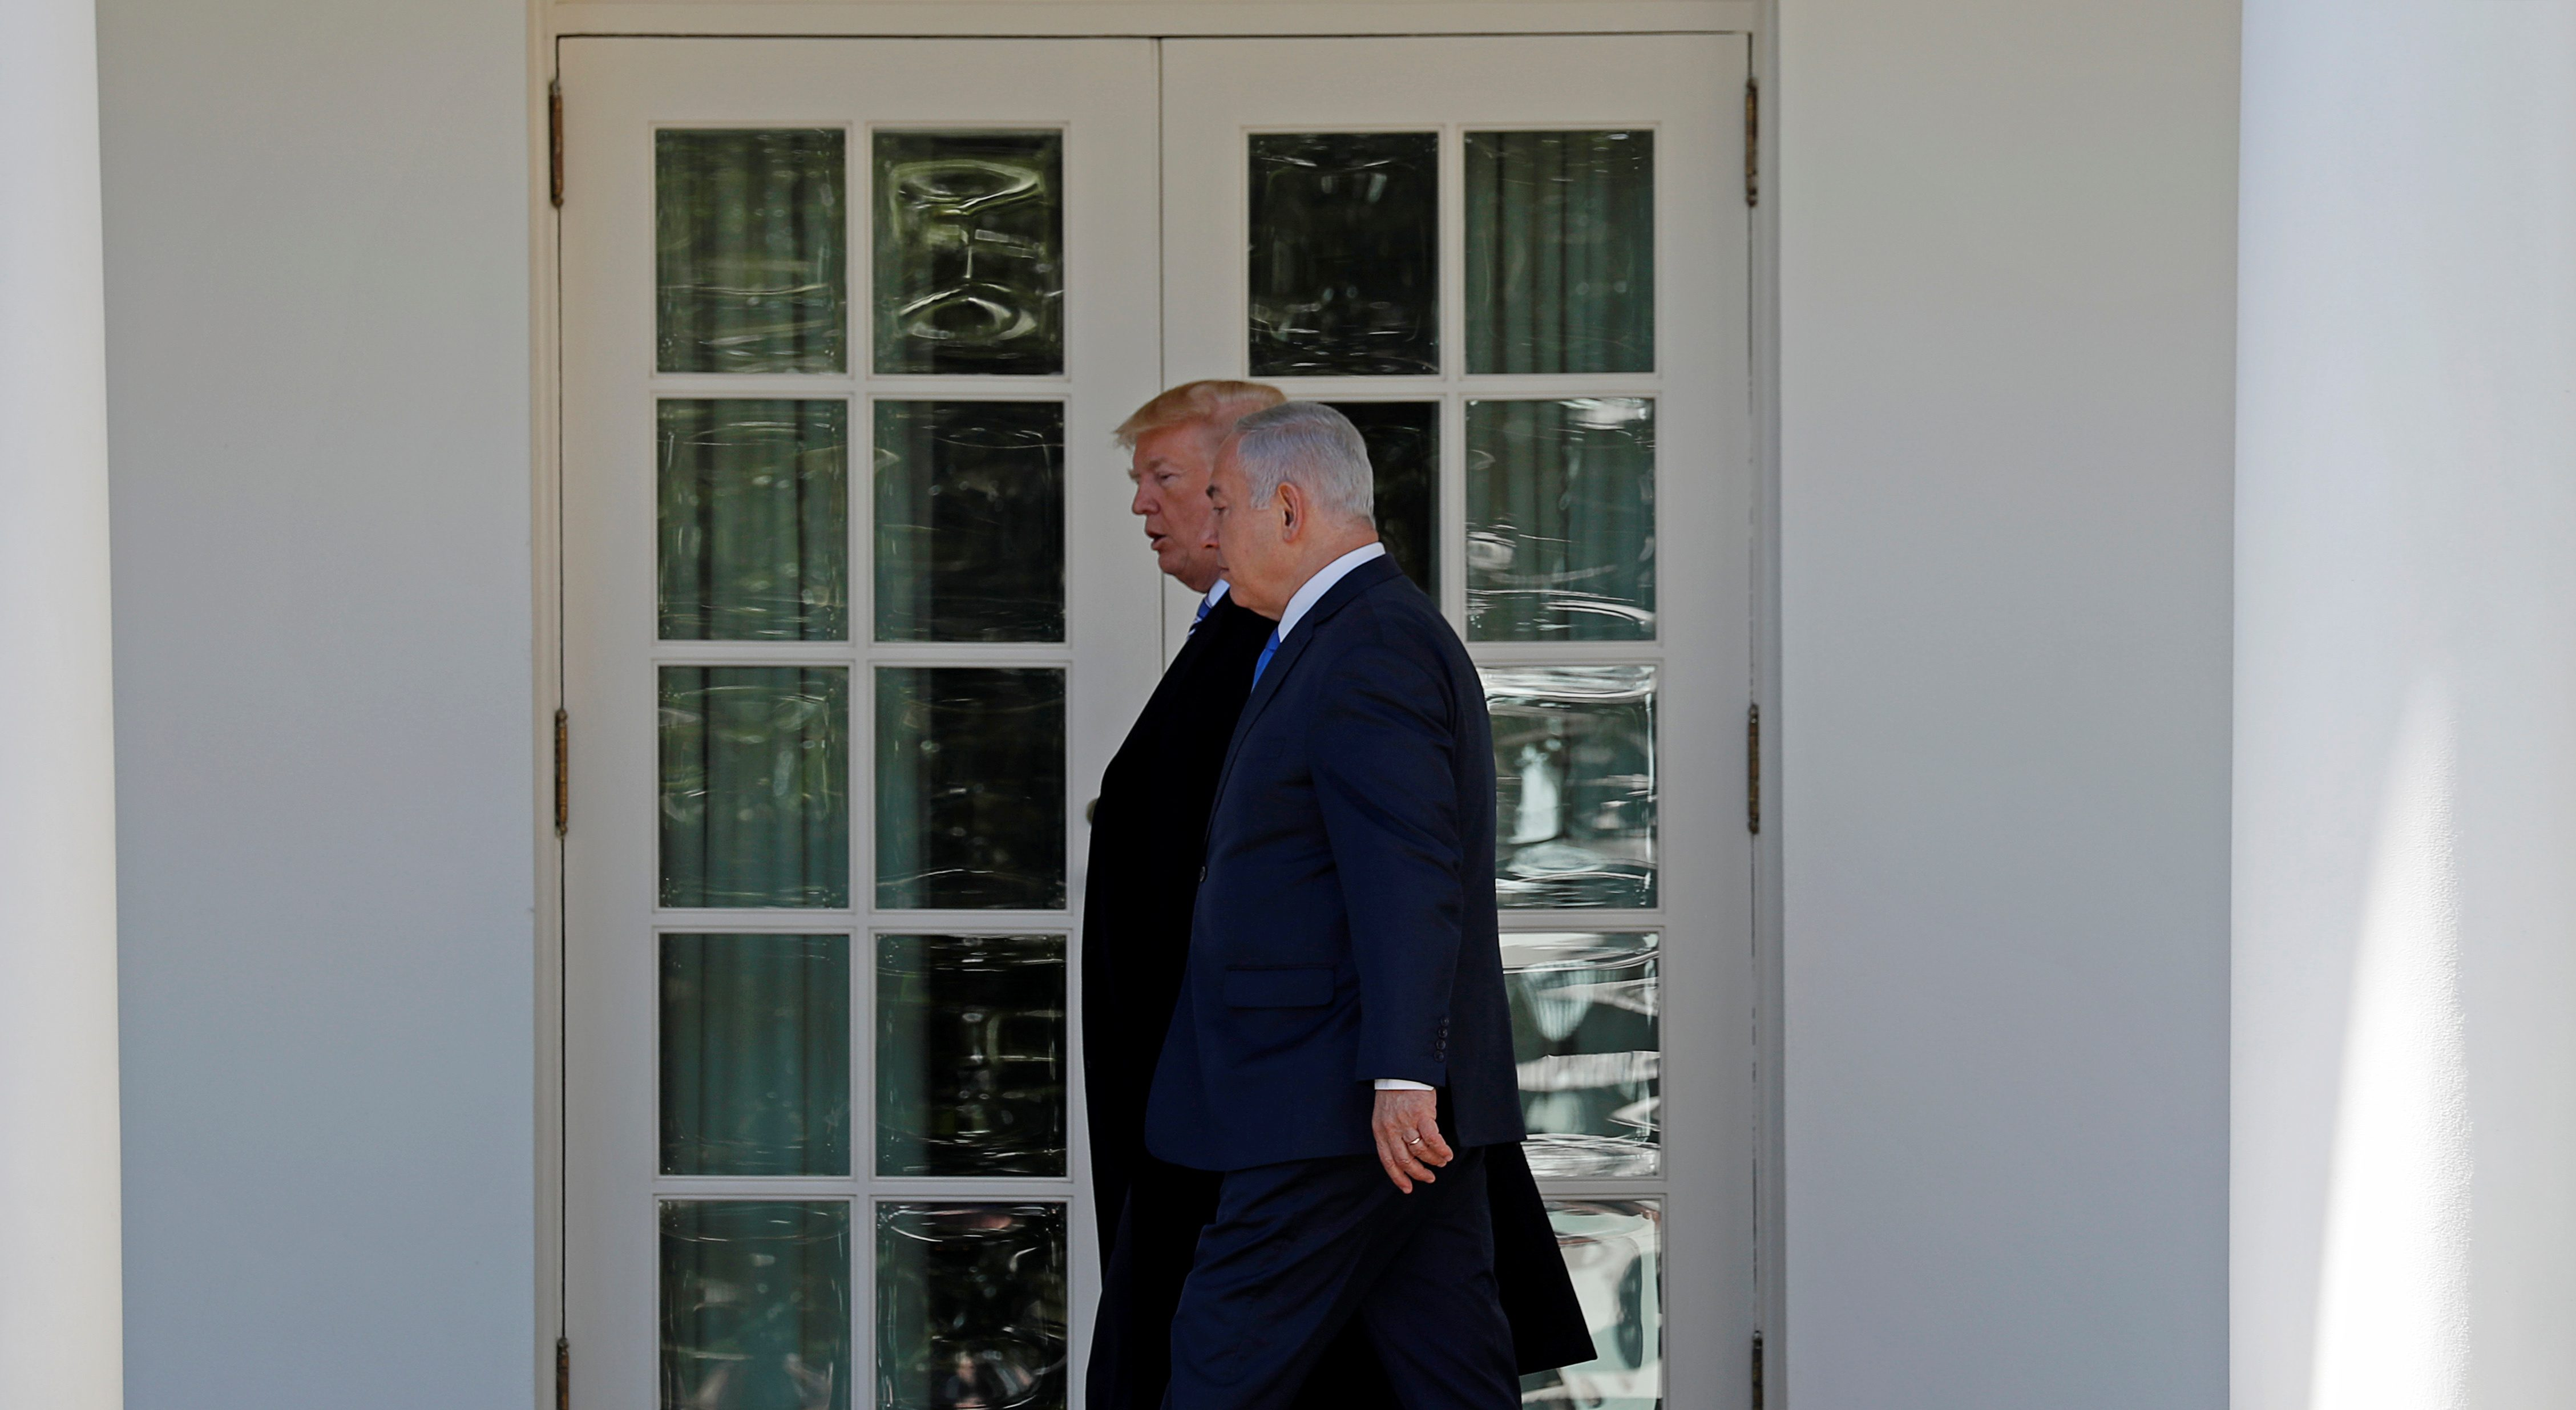 U.S. President Donald Trump and Israel Prime Minister Benjamin Netanyahu walk to the Oval Office of the White House in Washington, U.S., March 5, 2018. REUTERS/Kevin Lamarque - RC1A06A4D5F0